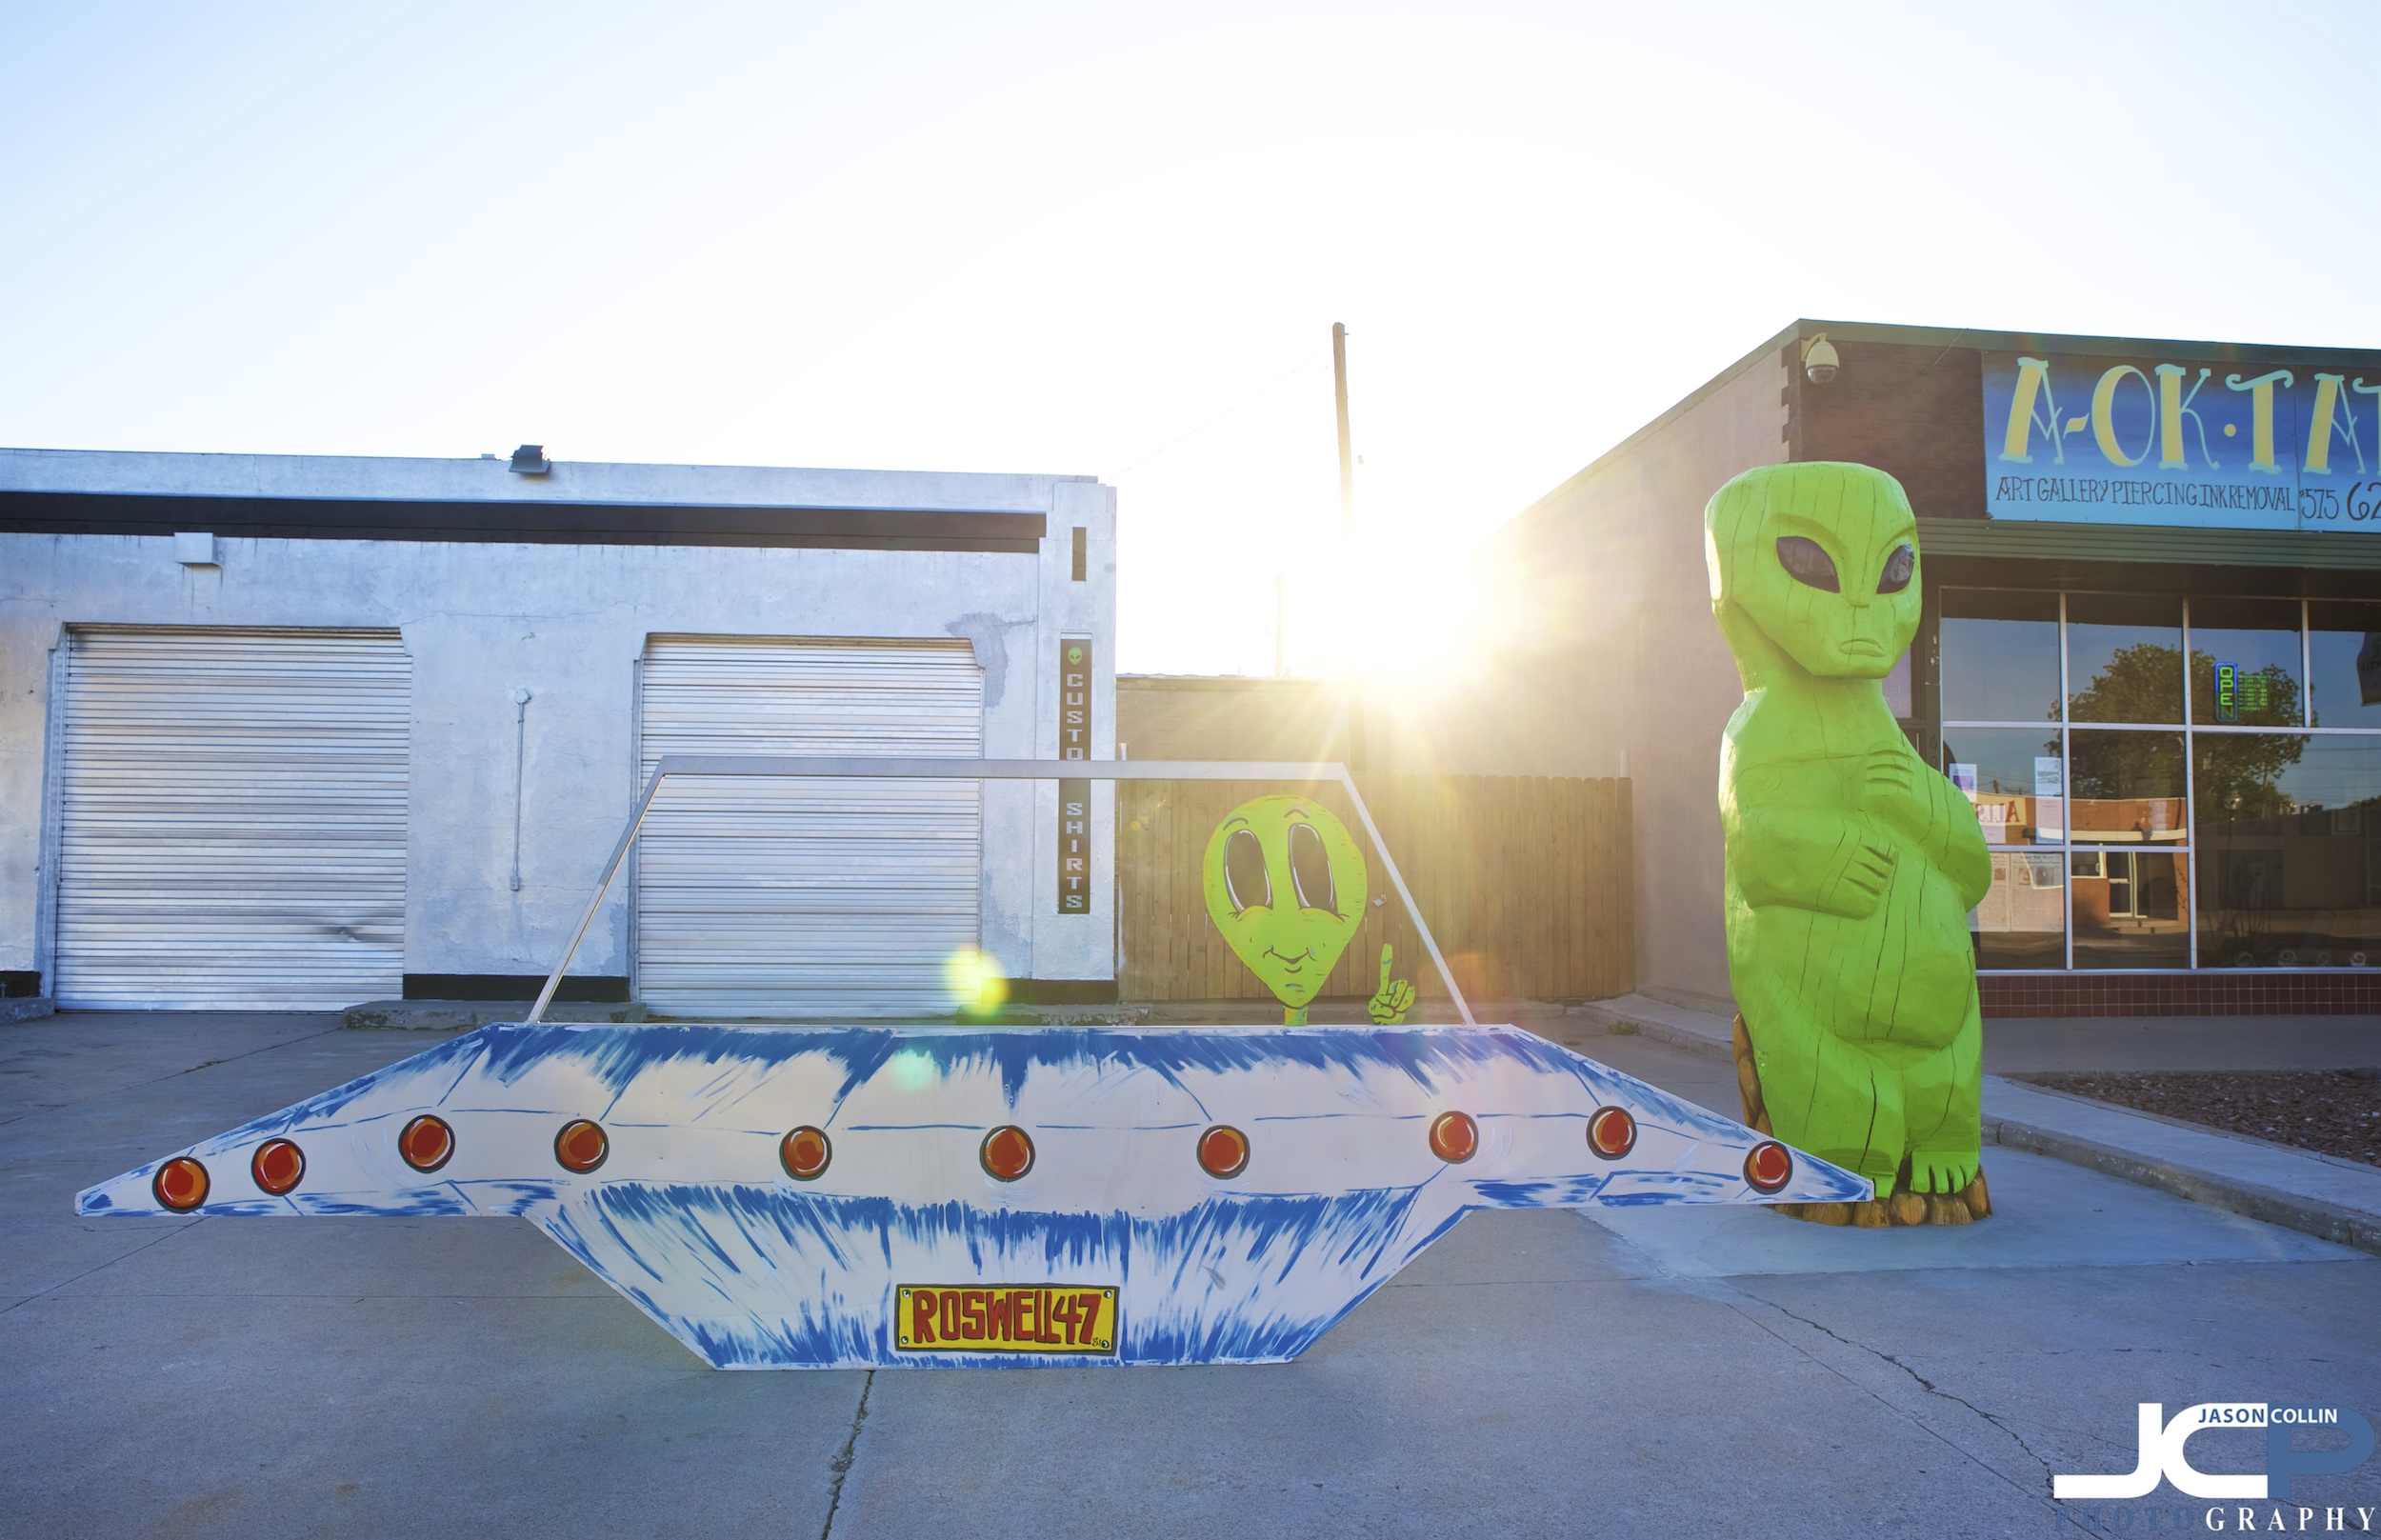 Park your UFO and shop in Roswell New Mexico